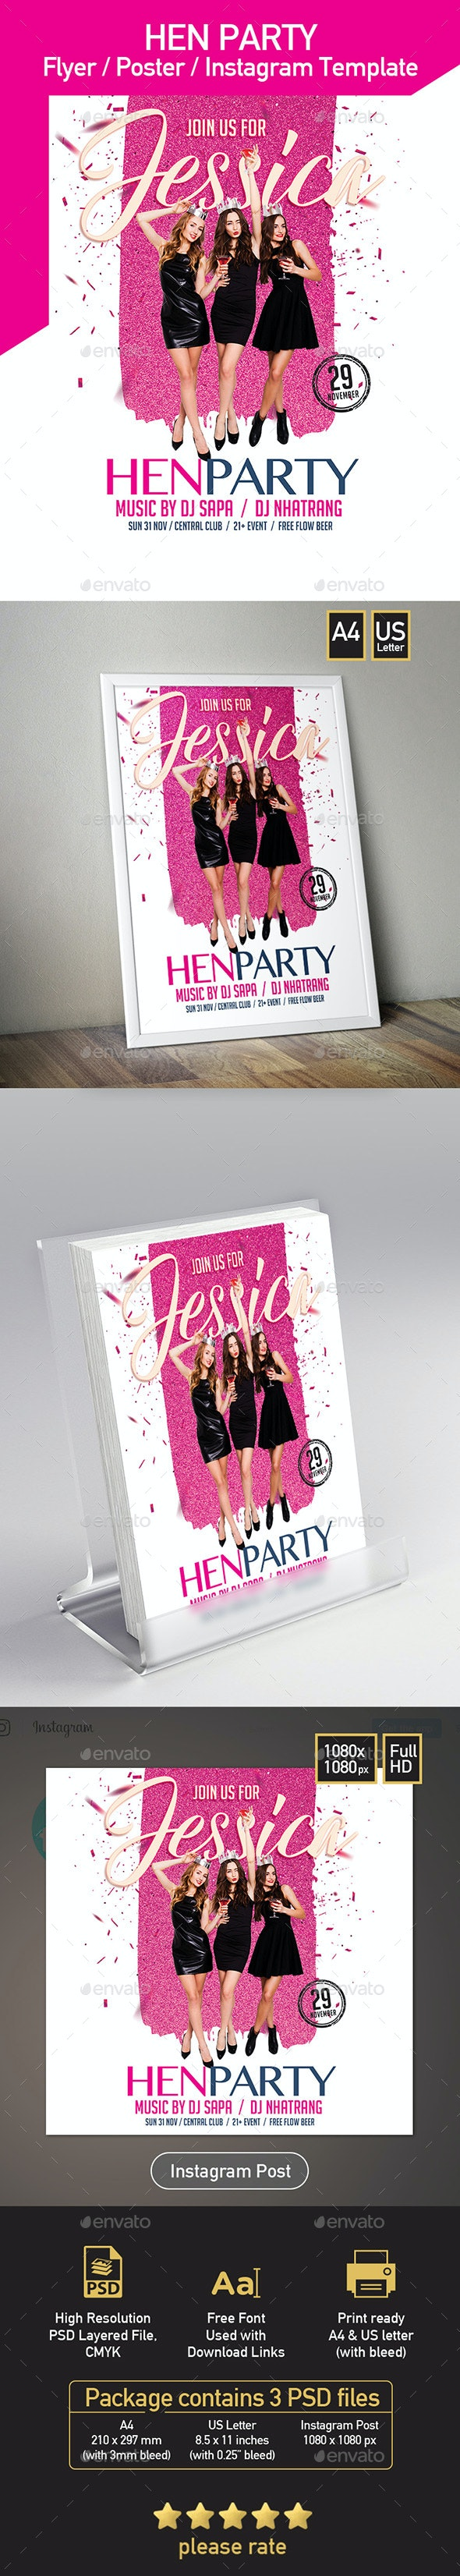 Hen Party Flyer, Invitation, Poster - Set of 3 Templates - Flyers Print Templates